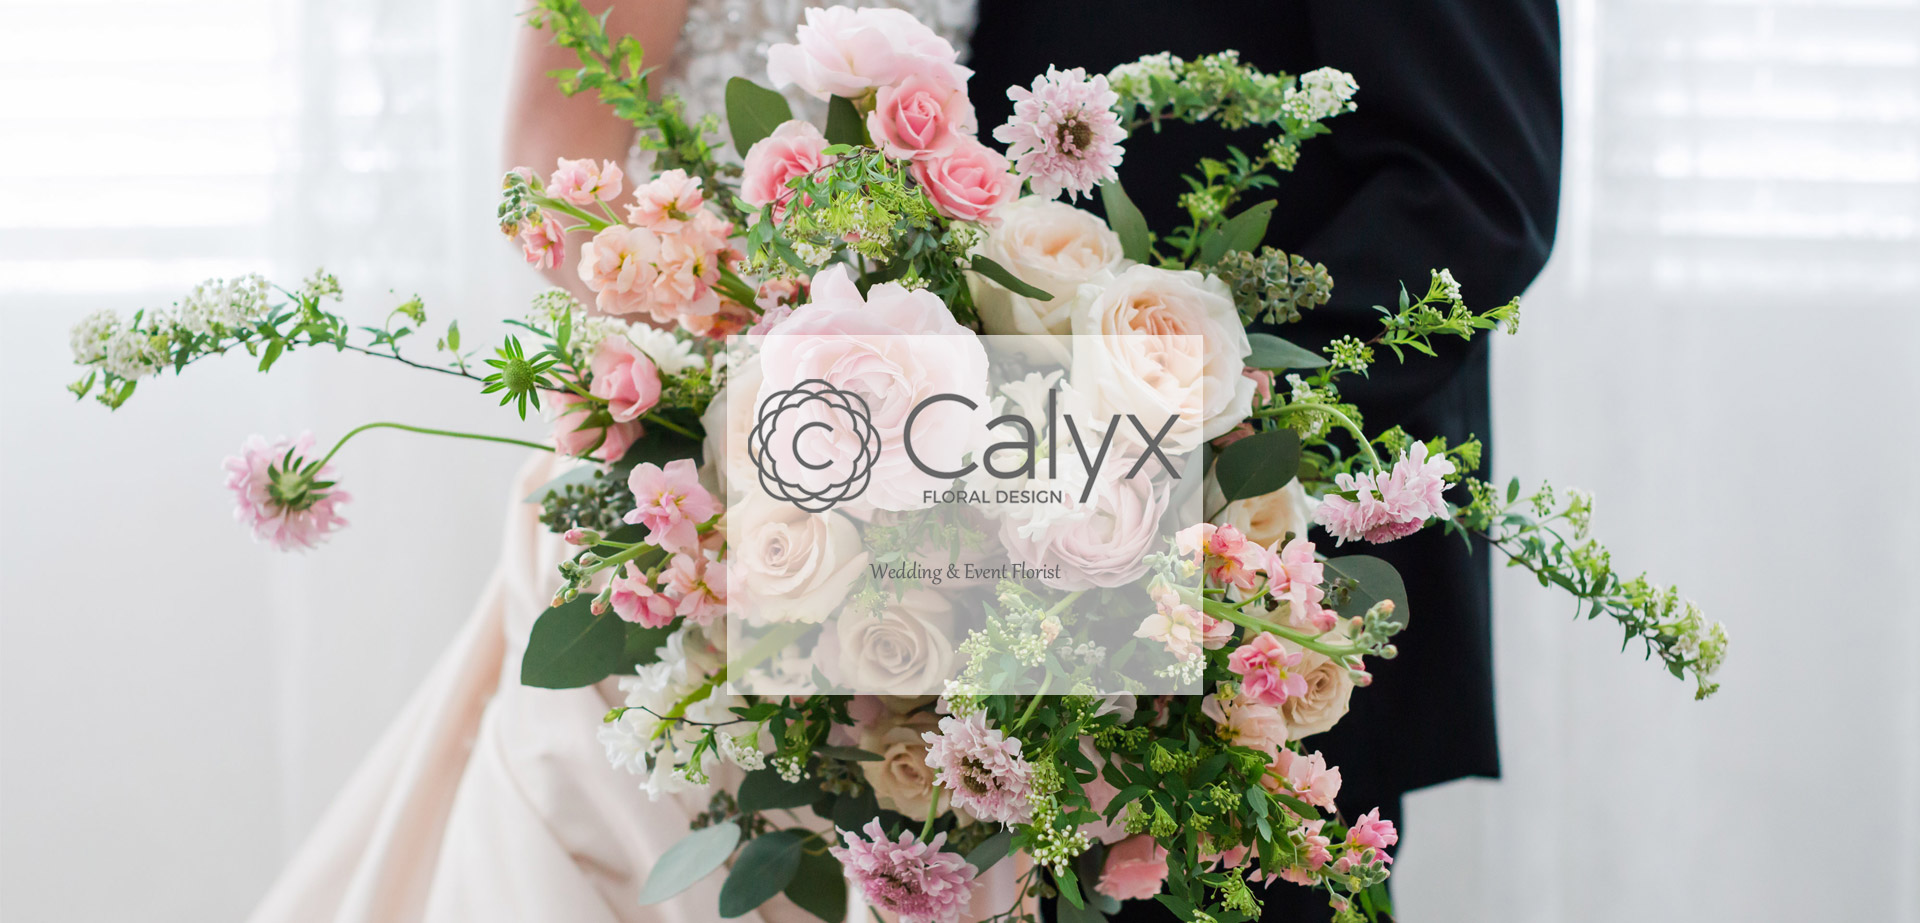 calyx-floral-wedding